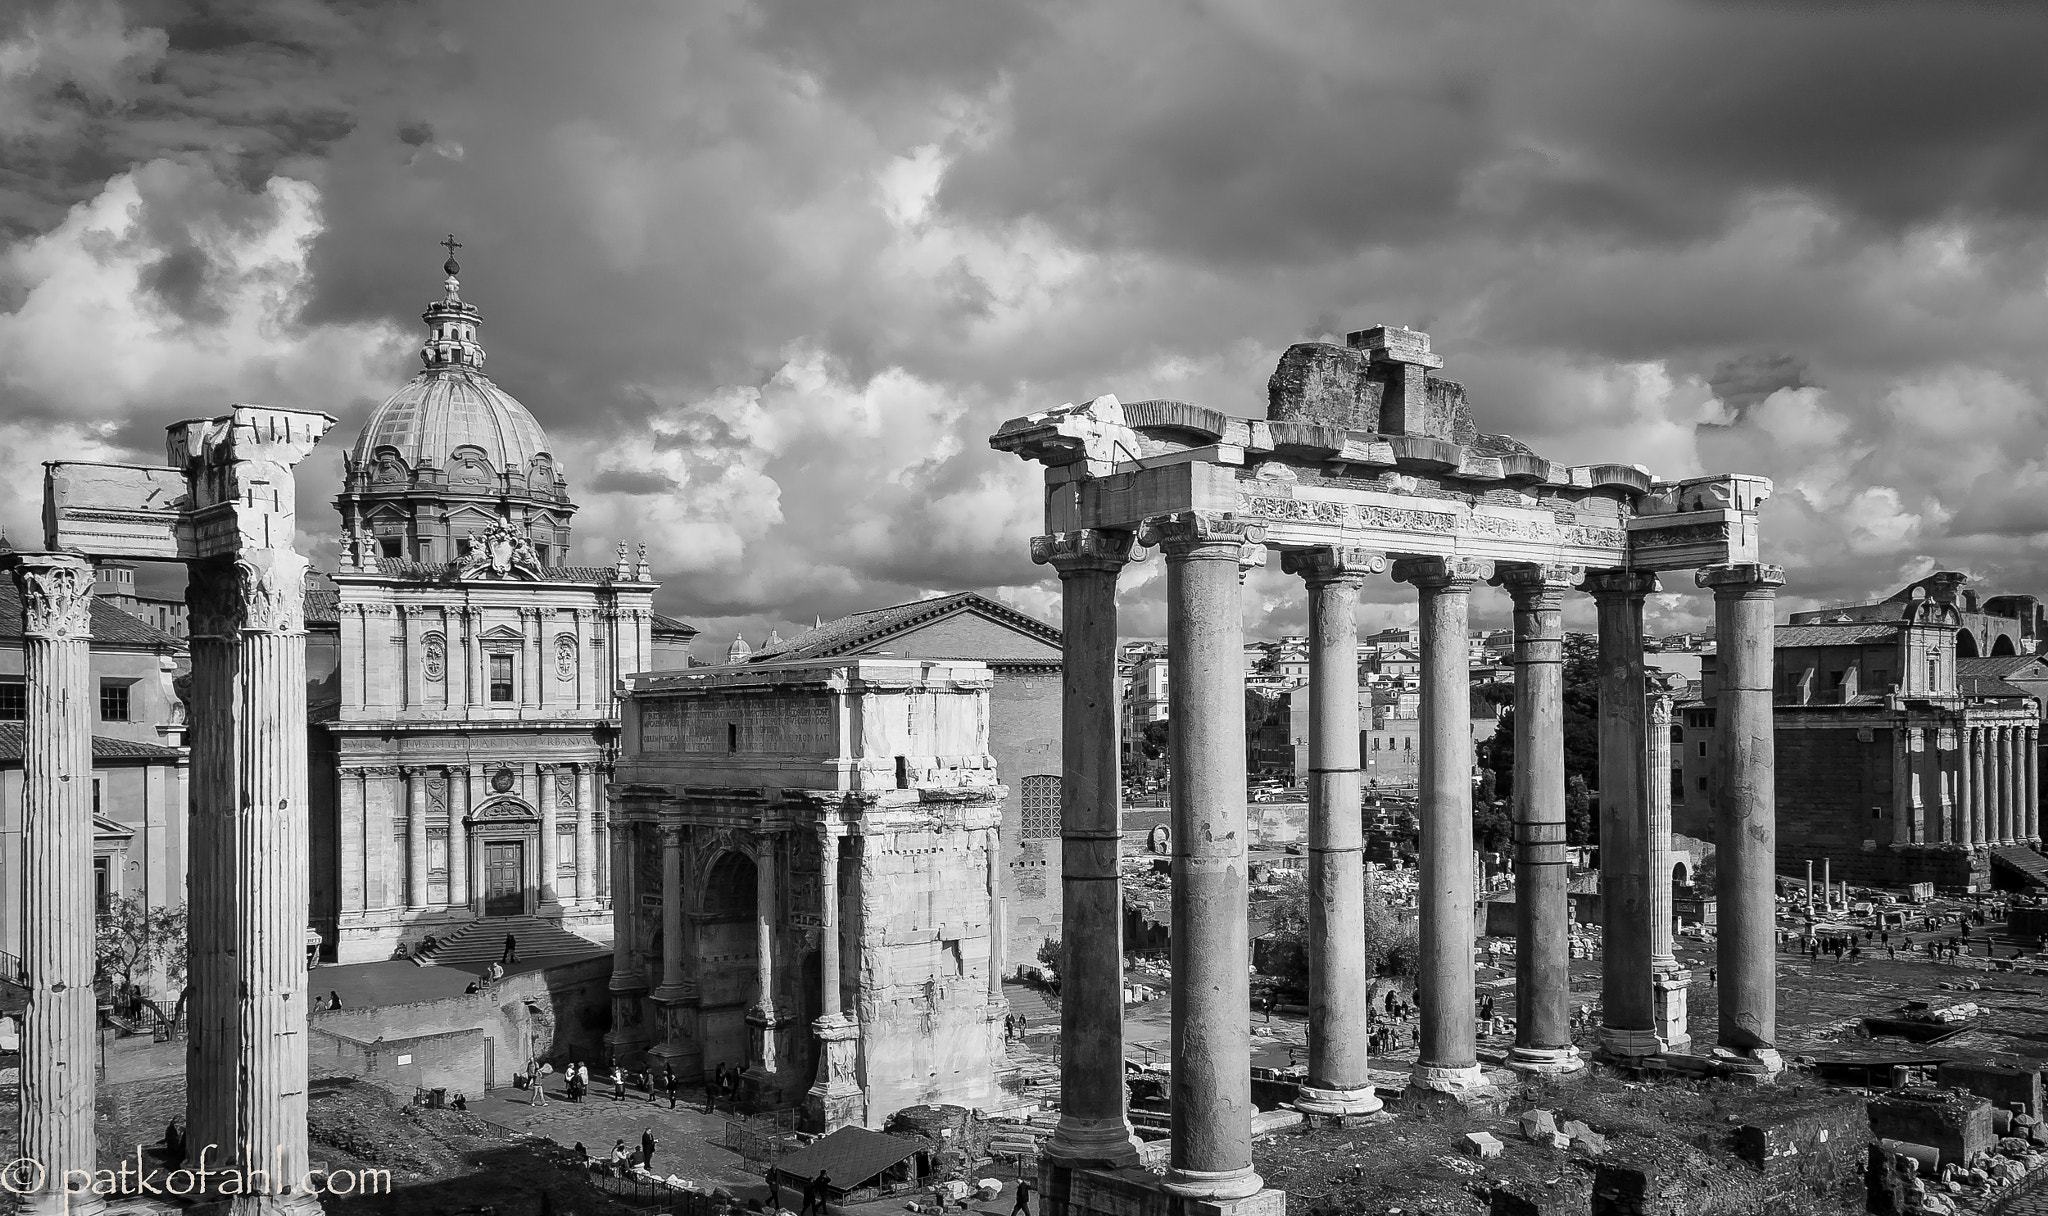 Photograph Roman Forum by Pat Kofahl on 500px